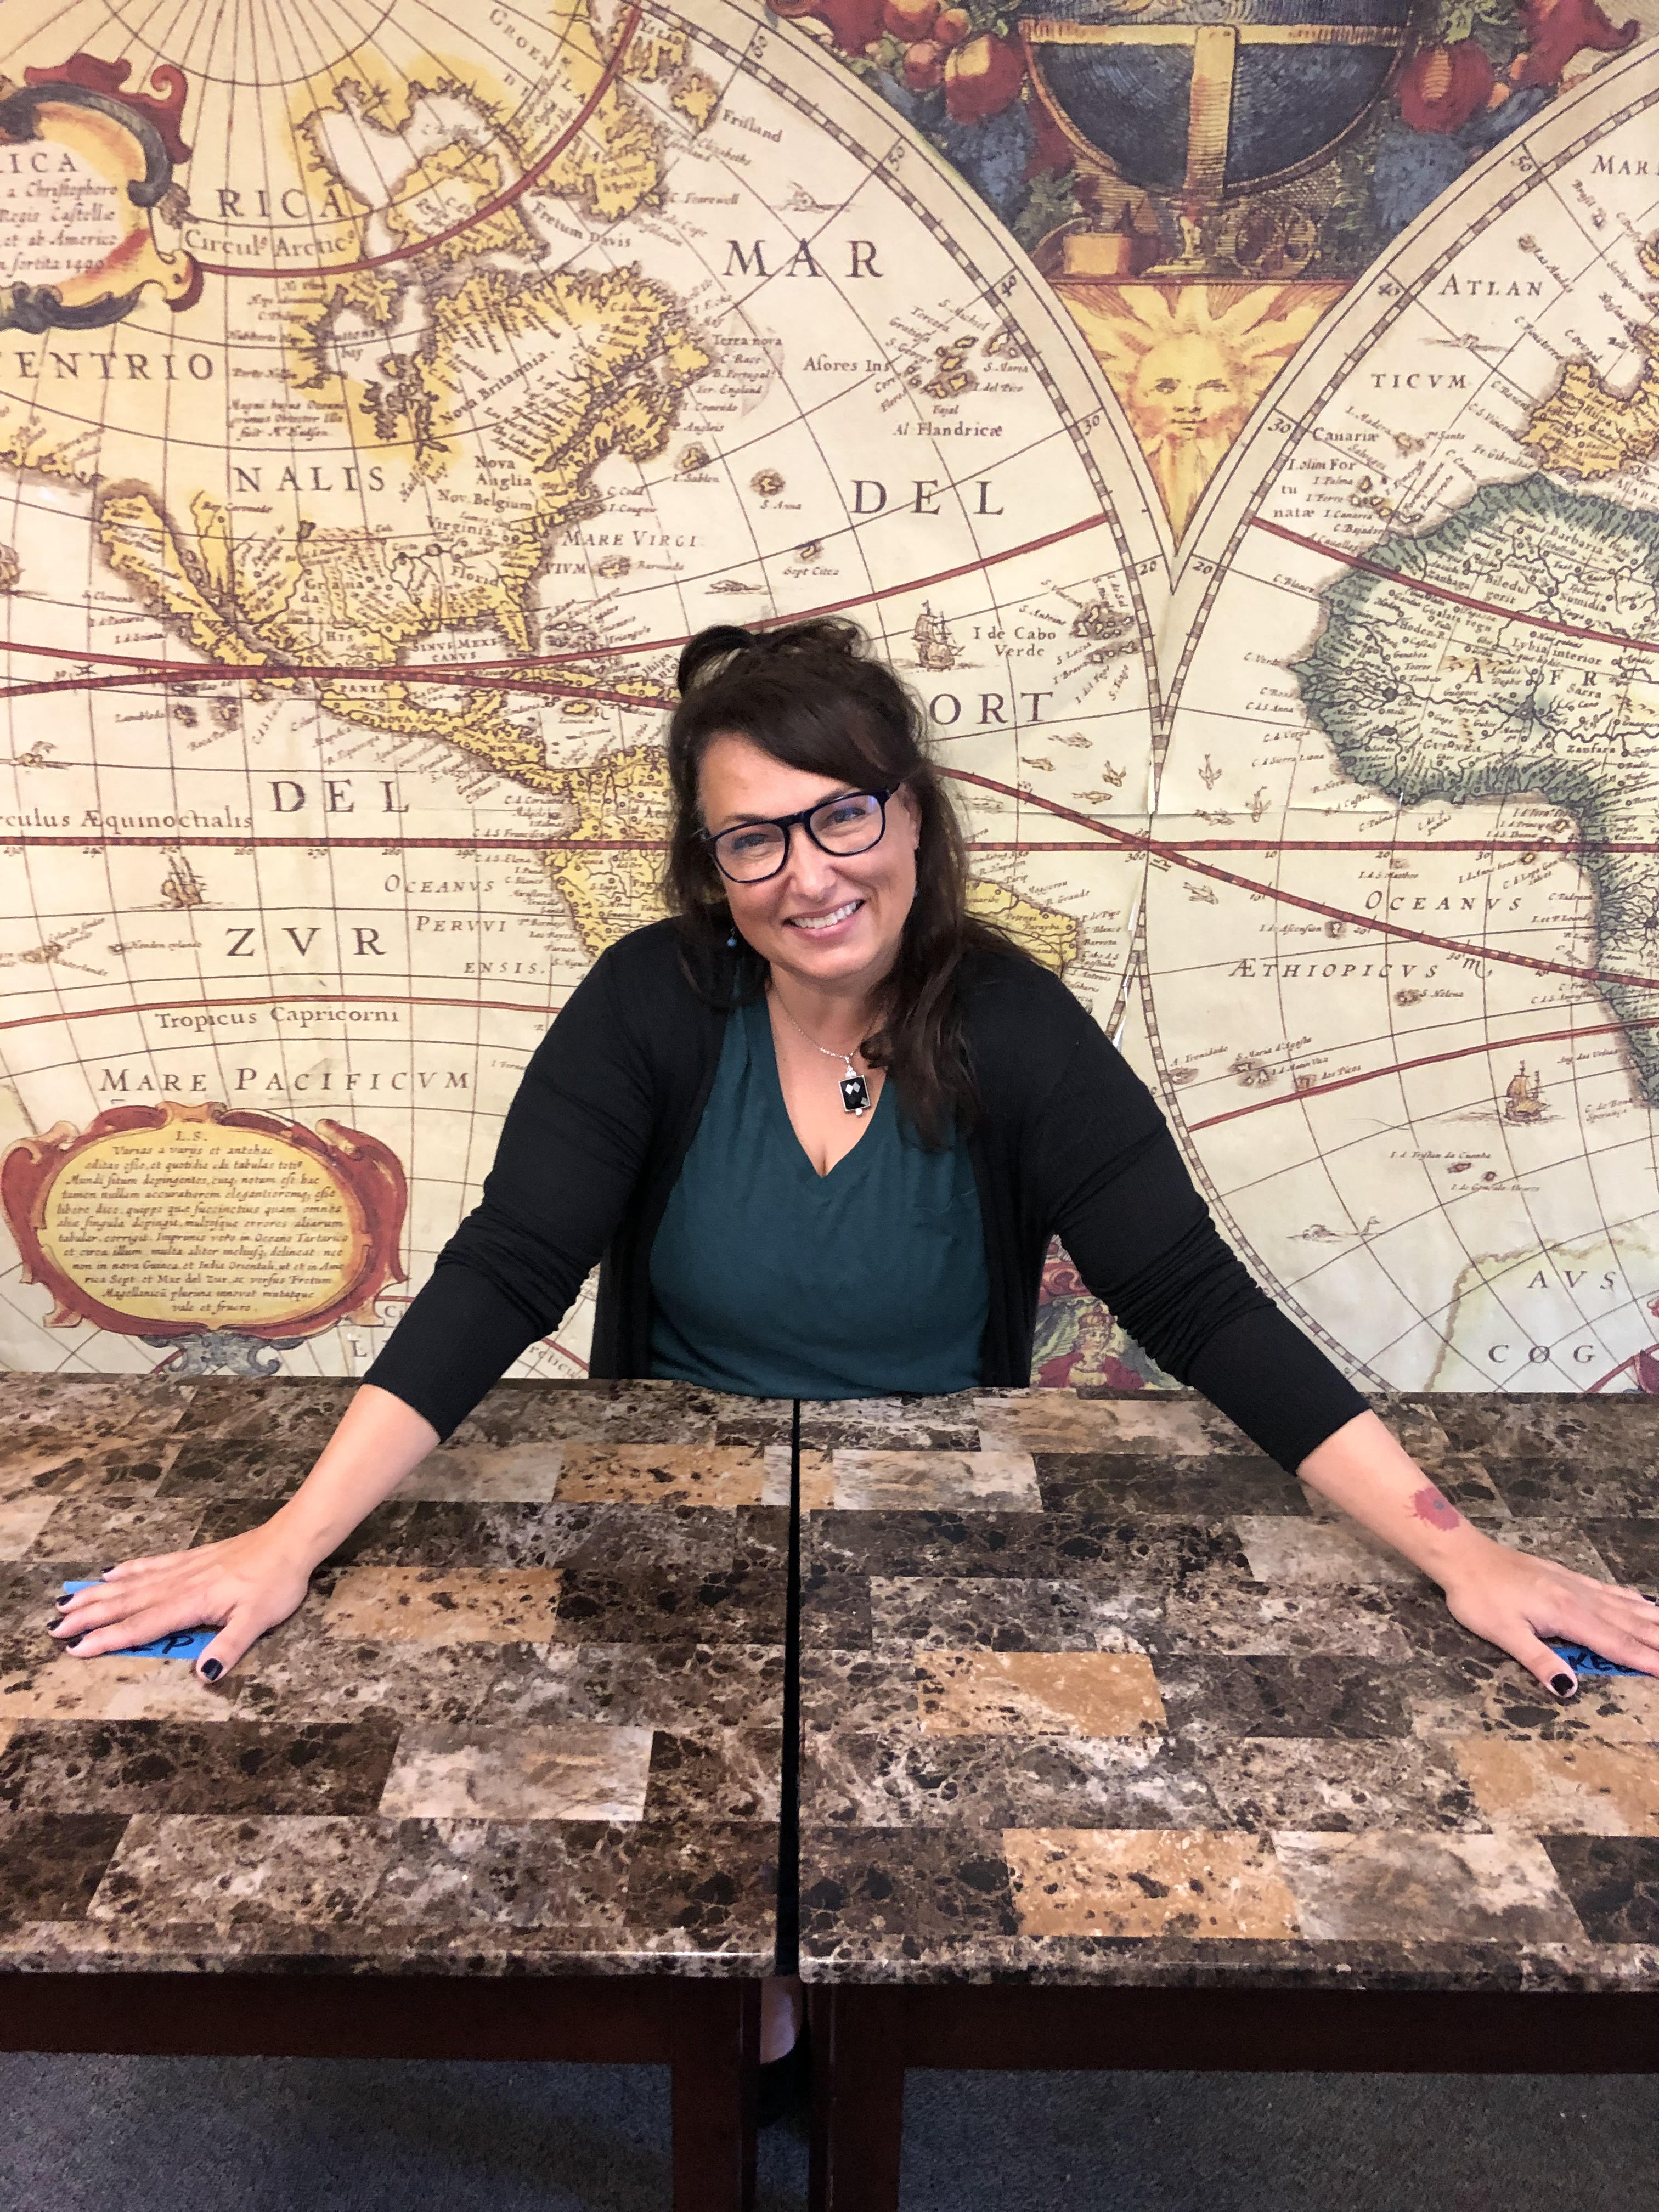 woman smiling, standing in front of a 17th century map of the world